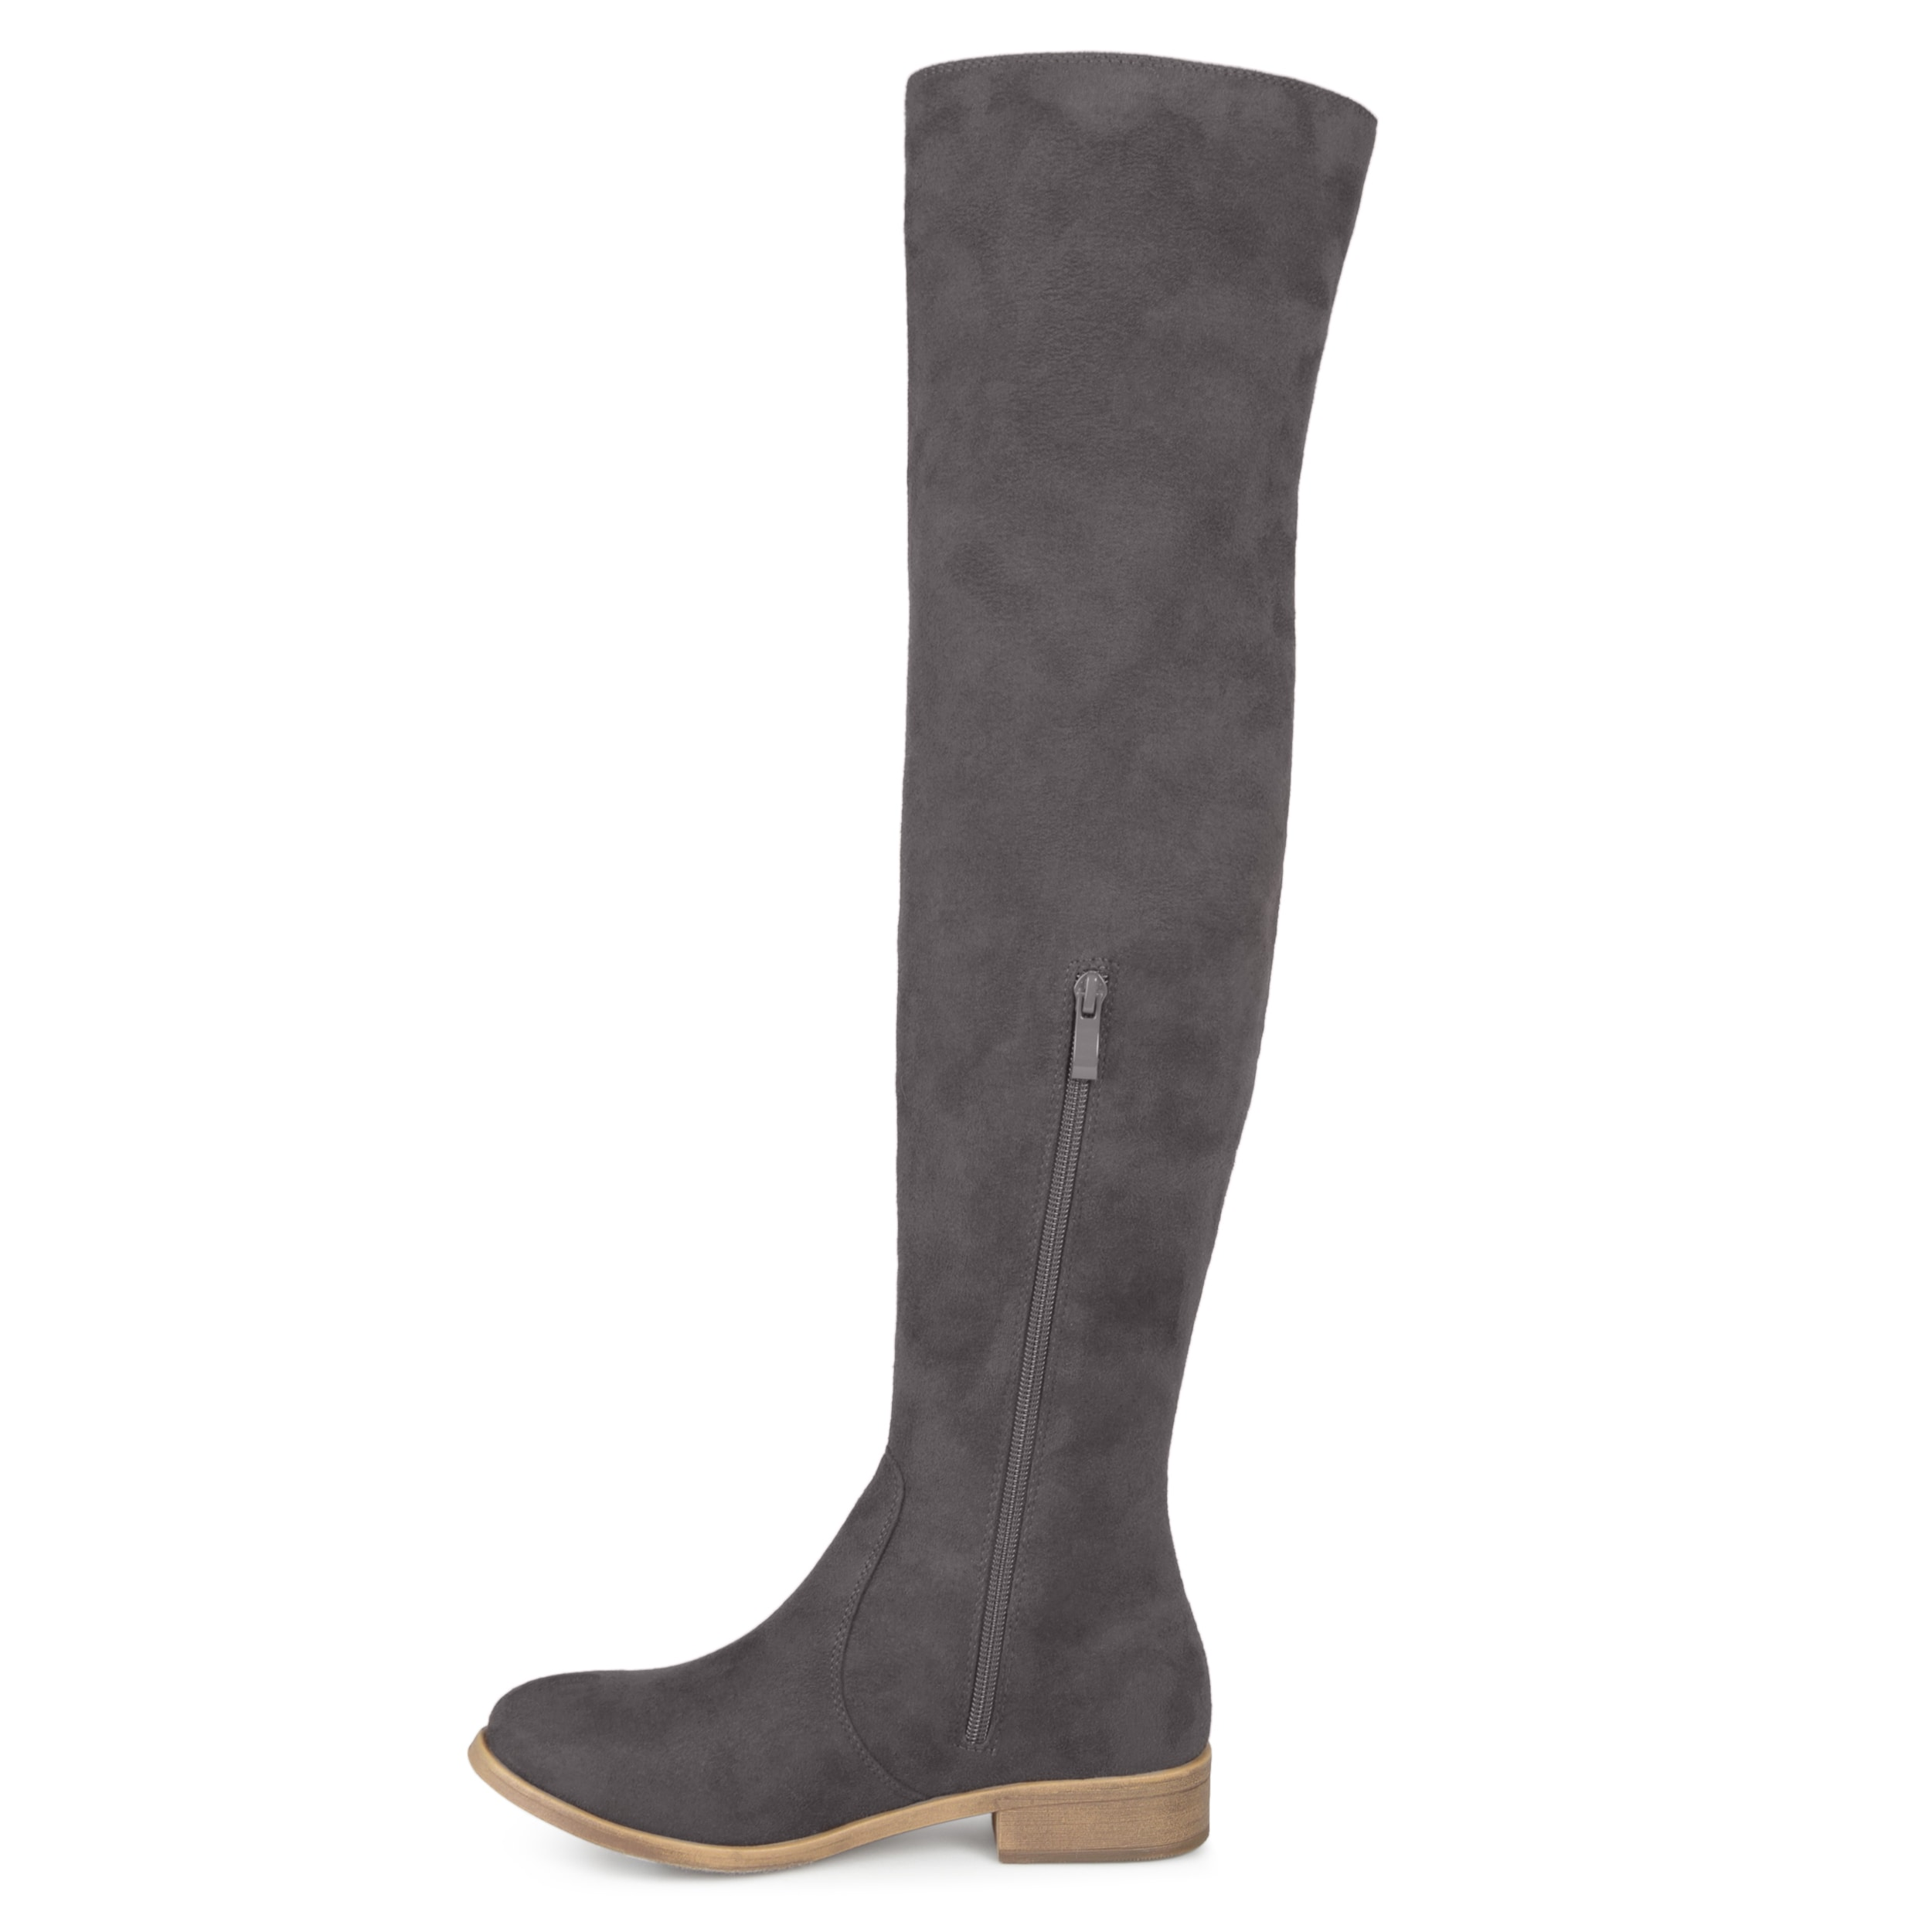 Journee Collection Pitch ... Women's Over-The-Knee Boots ft970NySHf